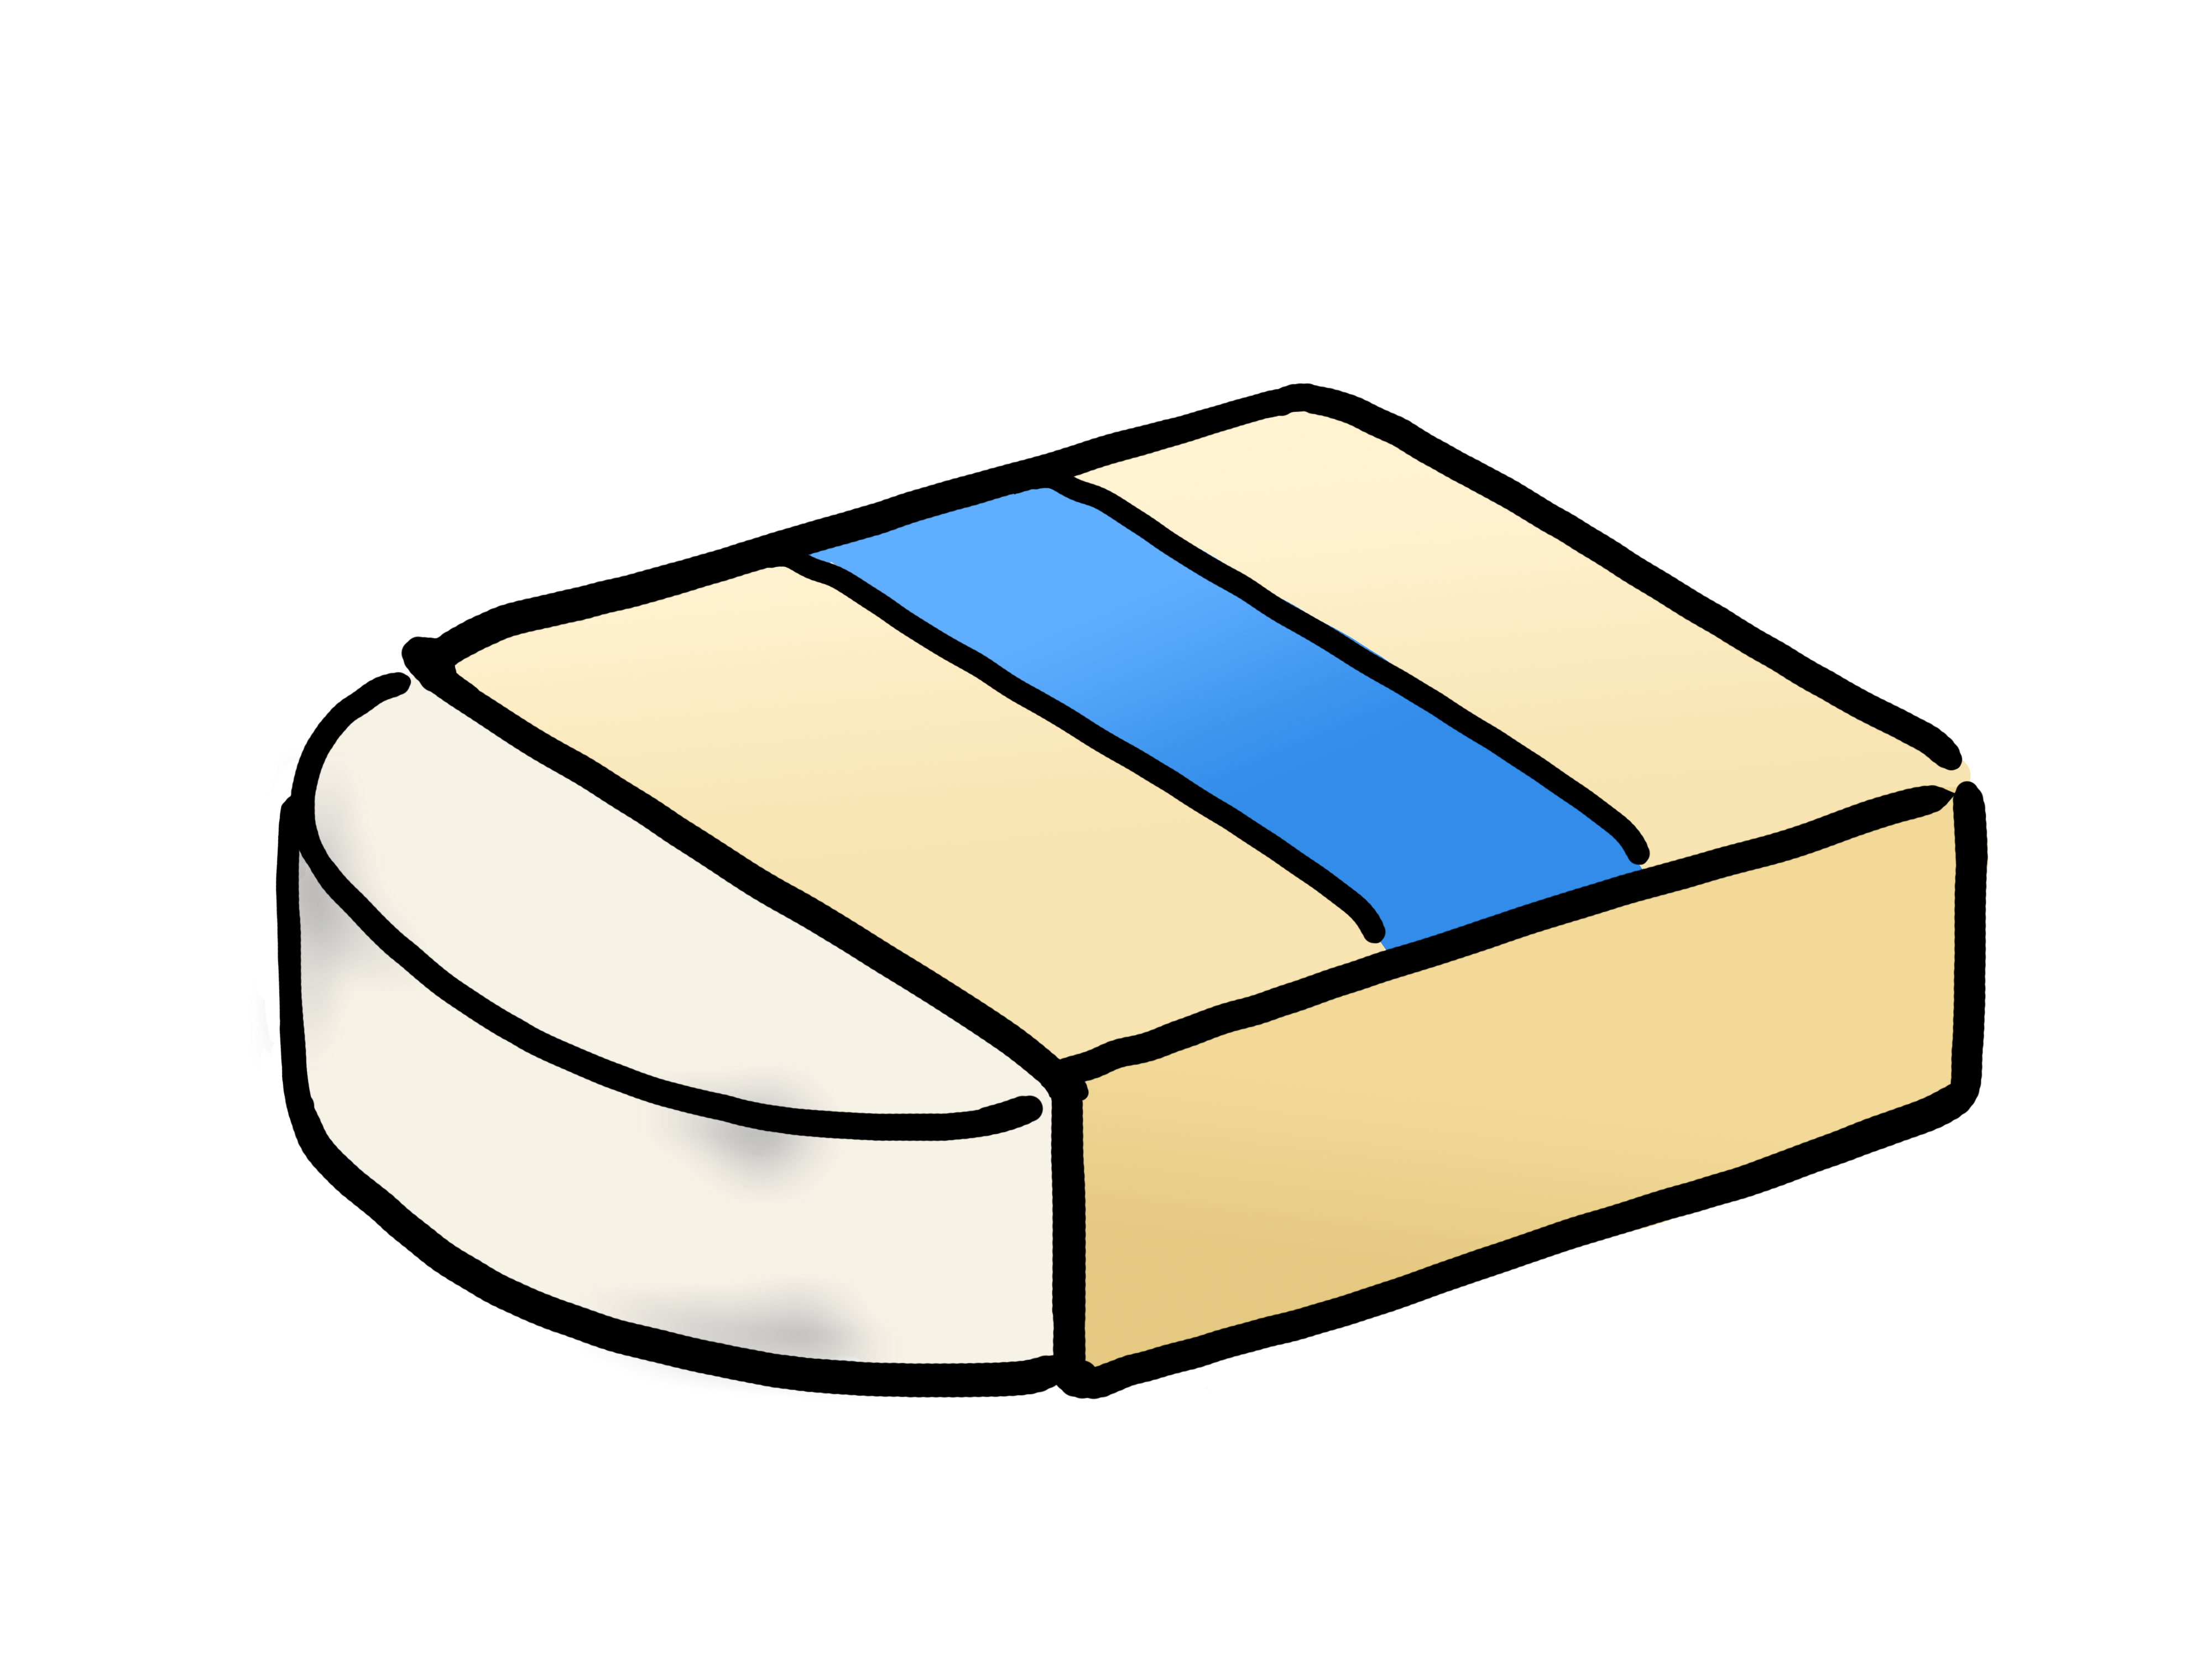 Eraser clipart stationary. Free images wikiclipart